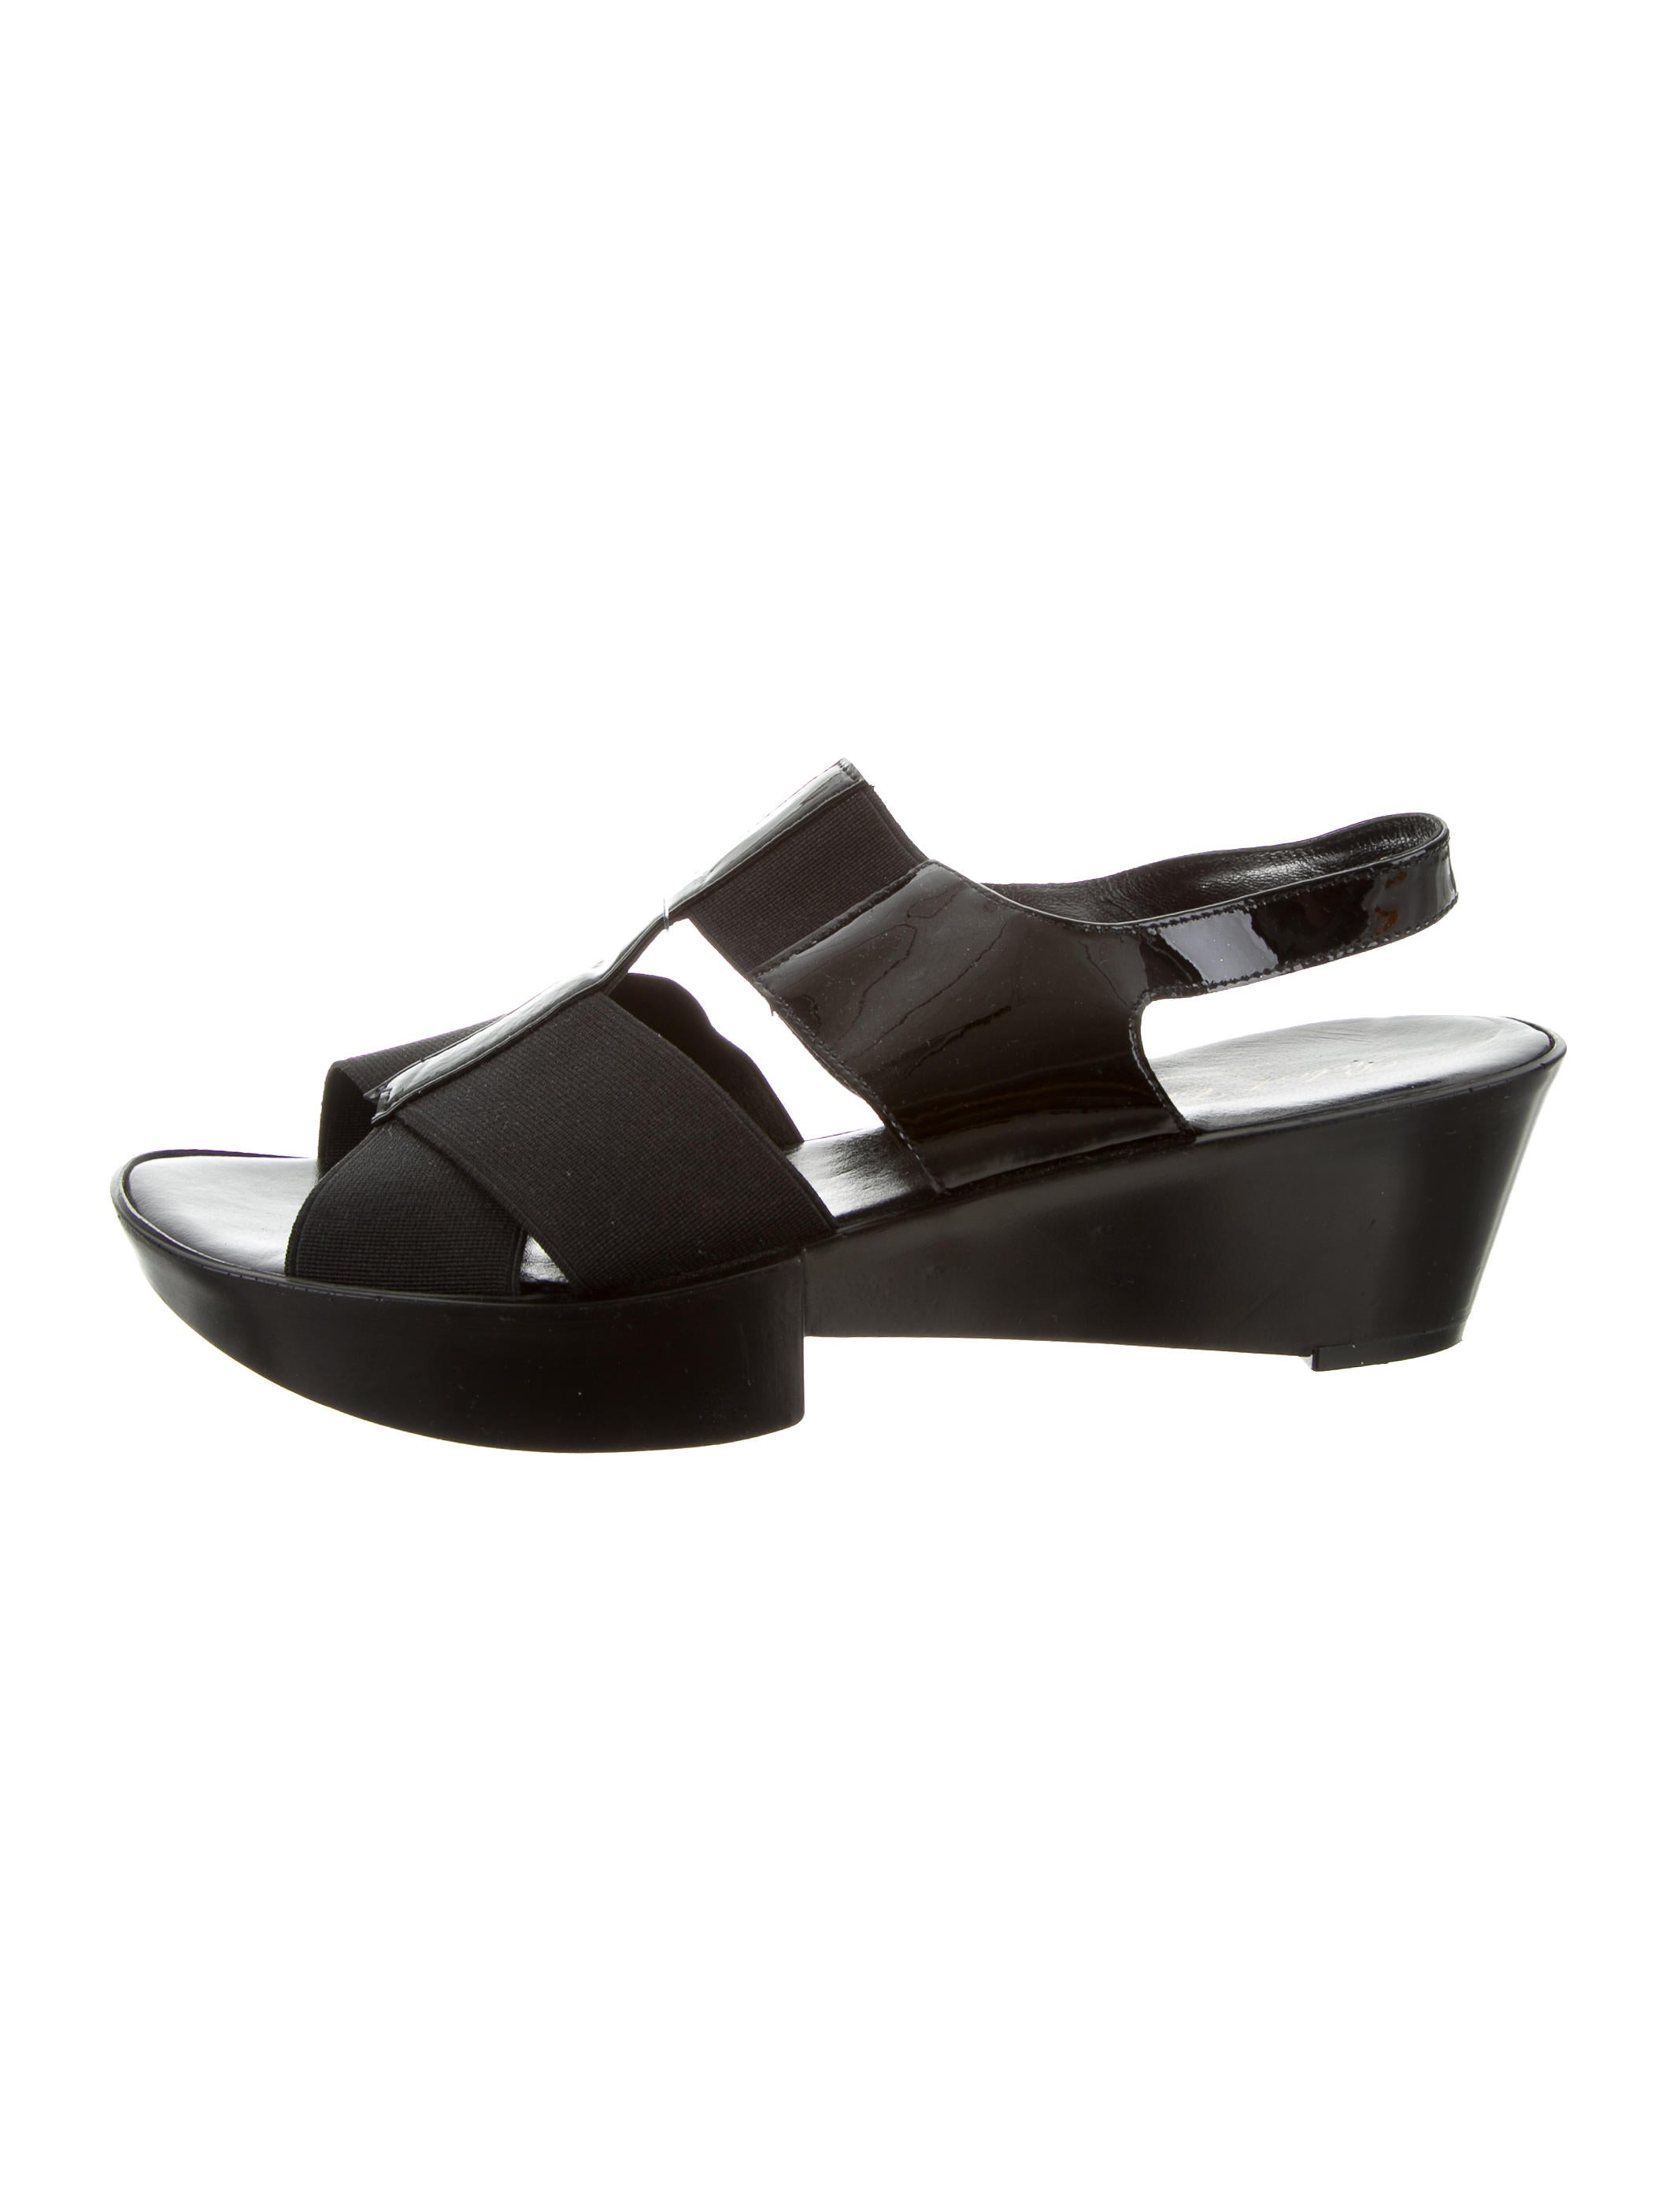 Robert Clergerie Leather Multistrap Sandals discount with credit card cheap outlet locations me0WN